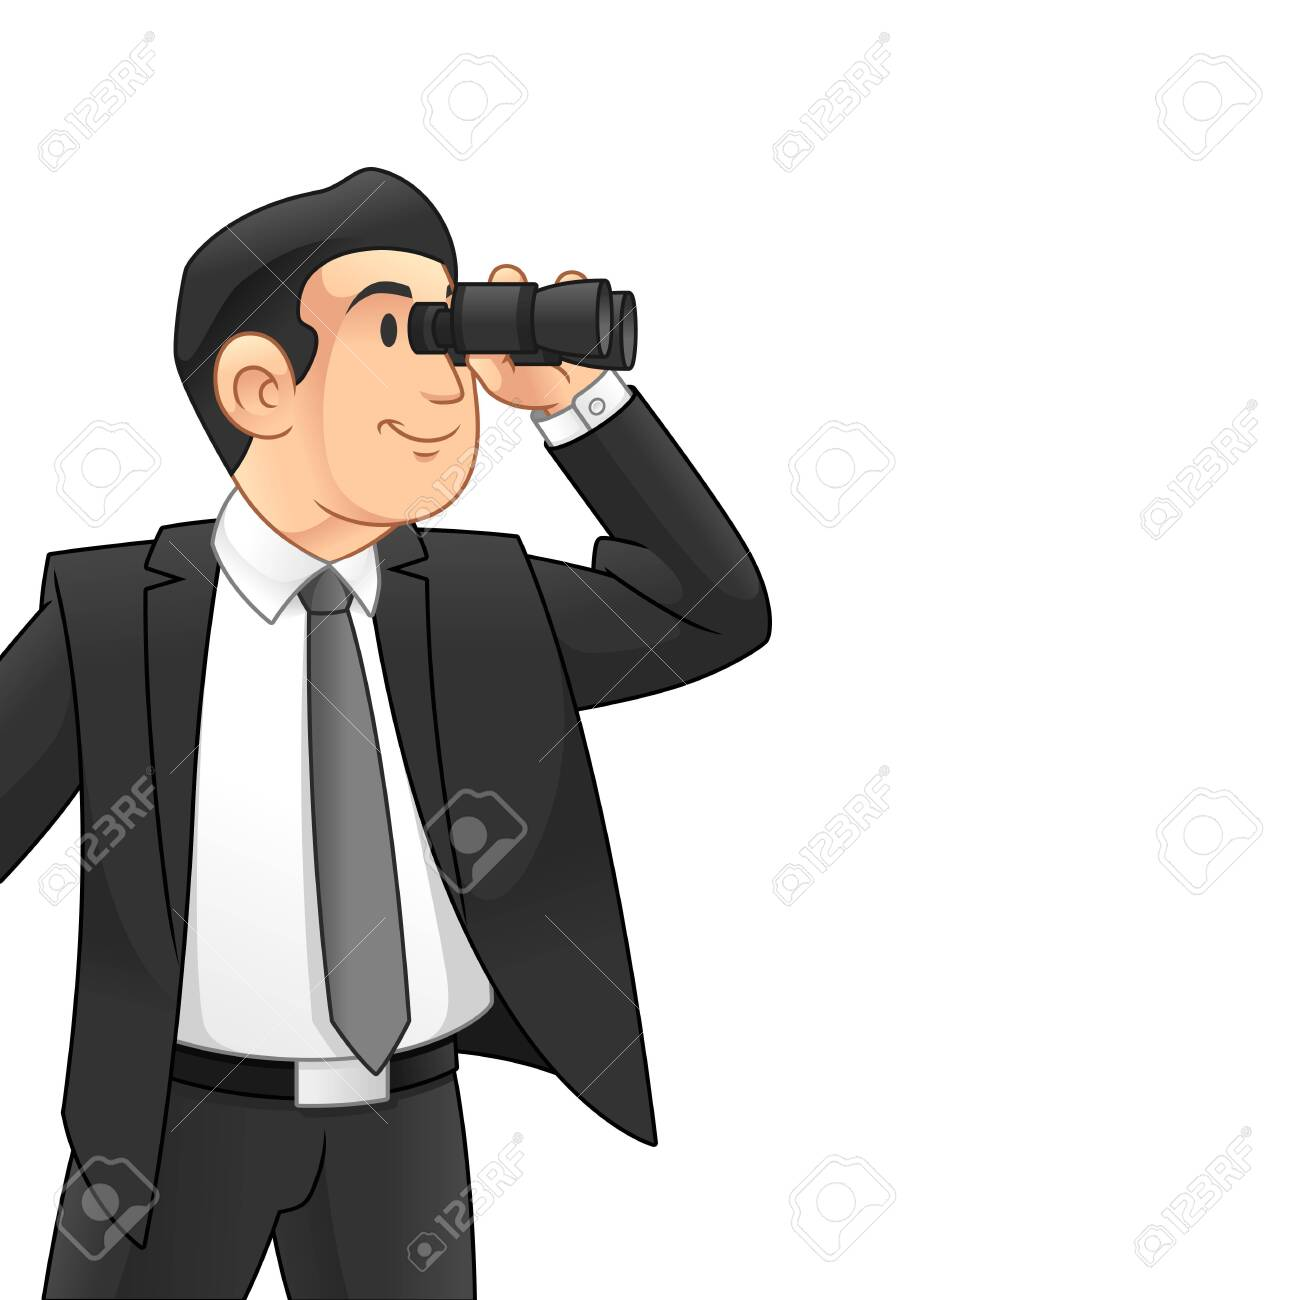 Businessman with Binoculars, Business Vision Concept, Cartoon Vector Illustration Design, in Isolated White Background. - 136886110